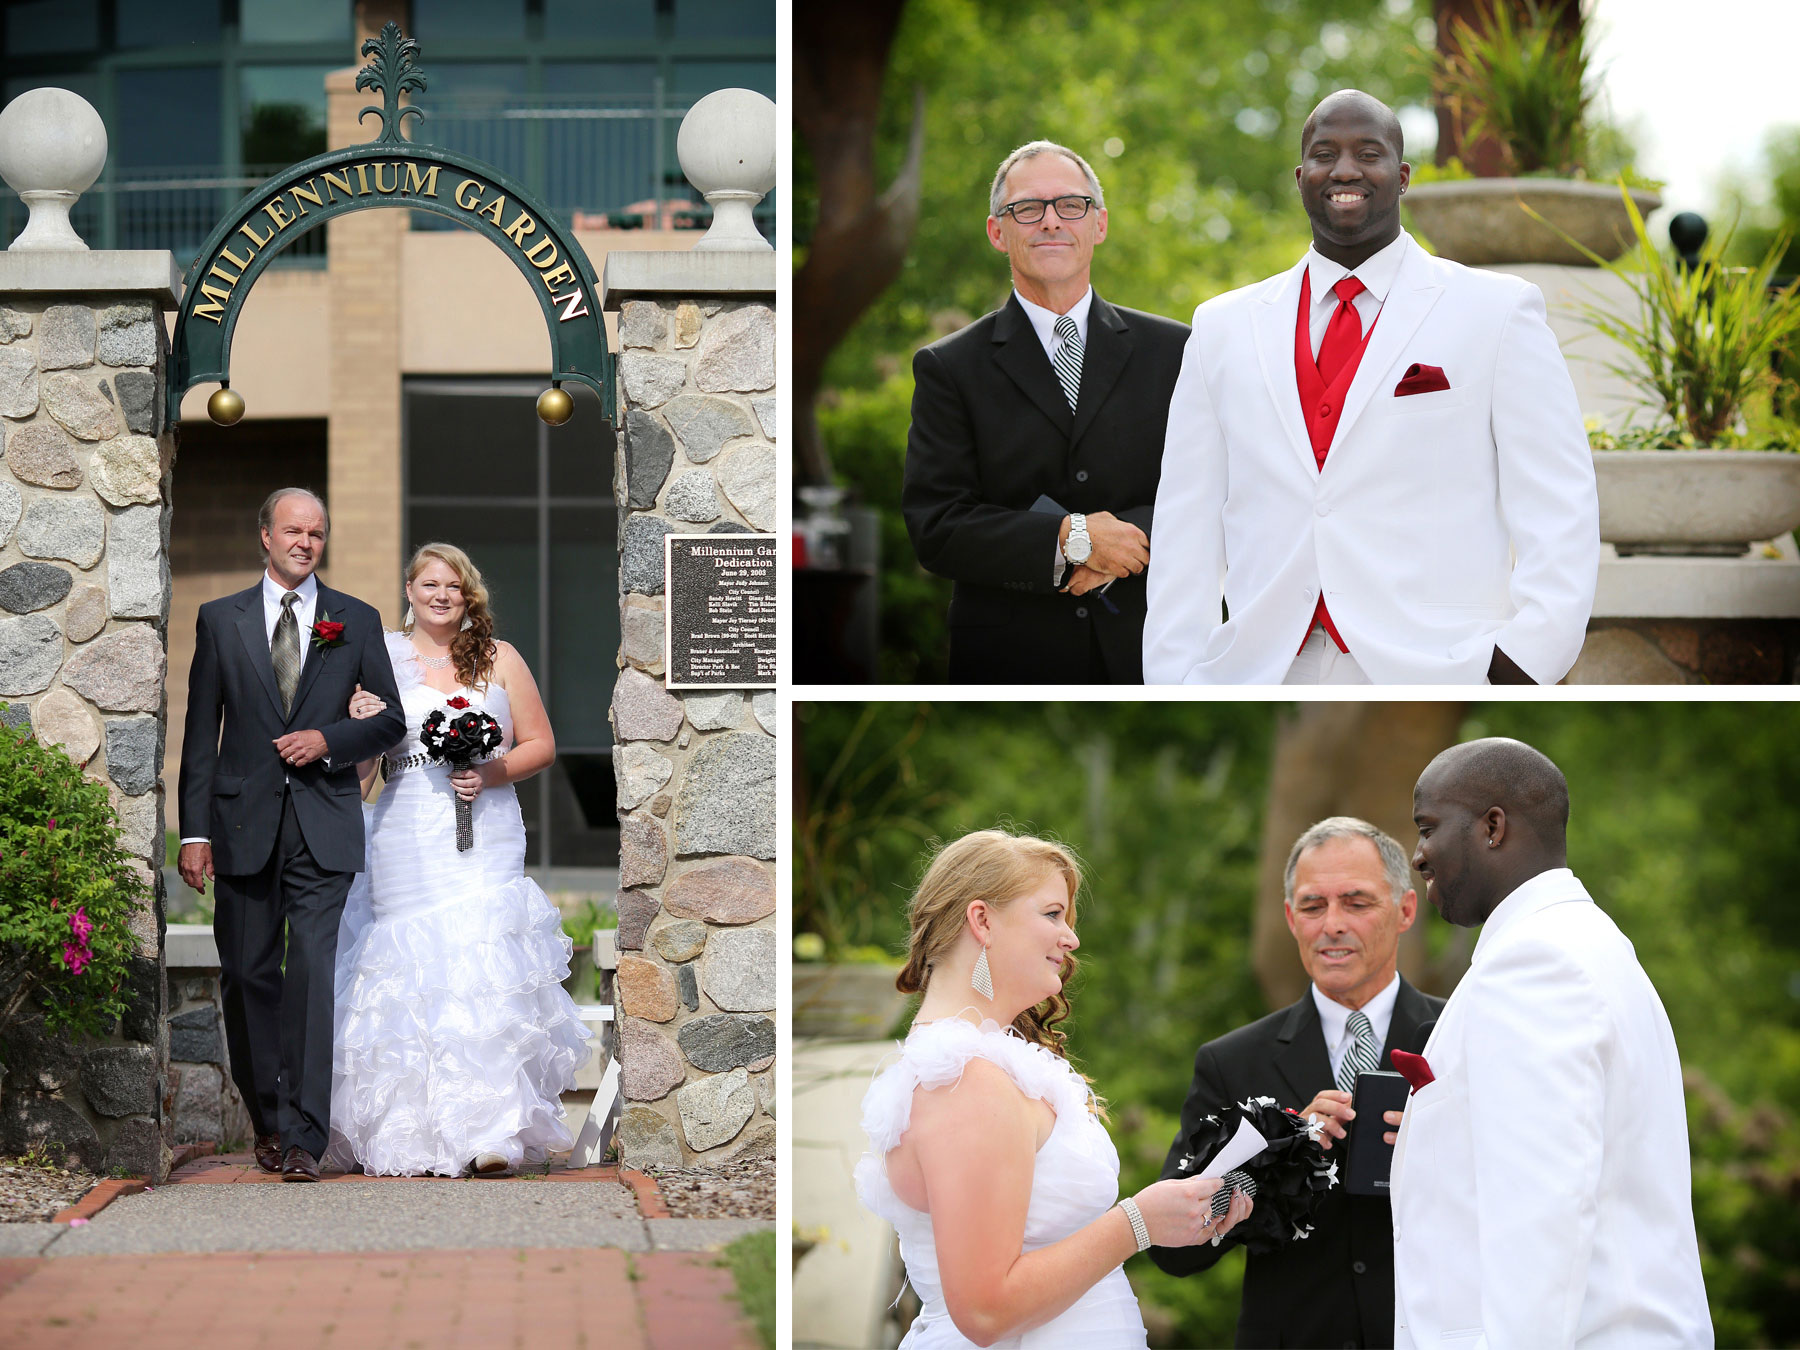 06-Minneapolis-Minnesota-Wedding-Photography-by-Vick-Photography-at-Plymouth-Creek-Center-Outdoor-Ceremony-Emily-&-Lonnie.jpg